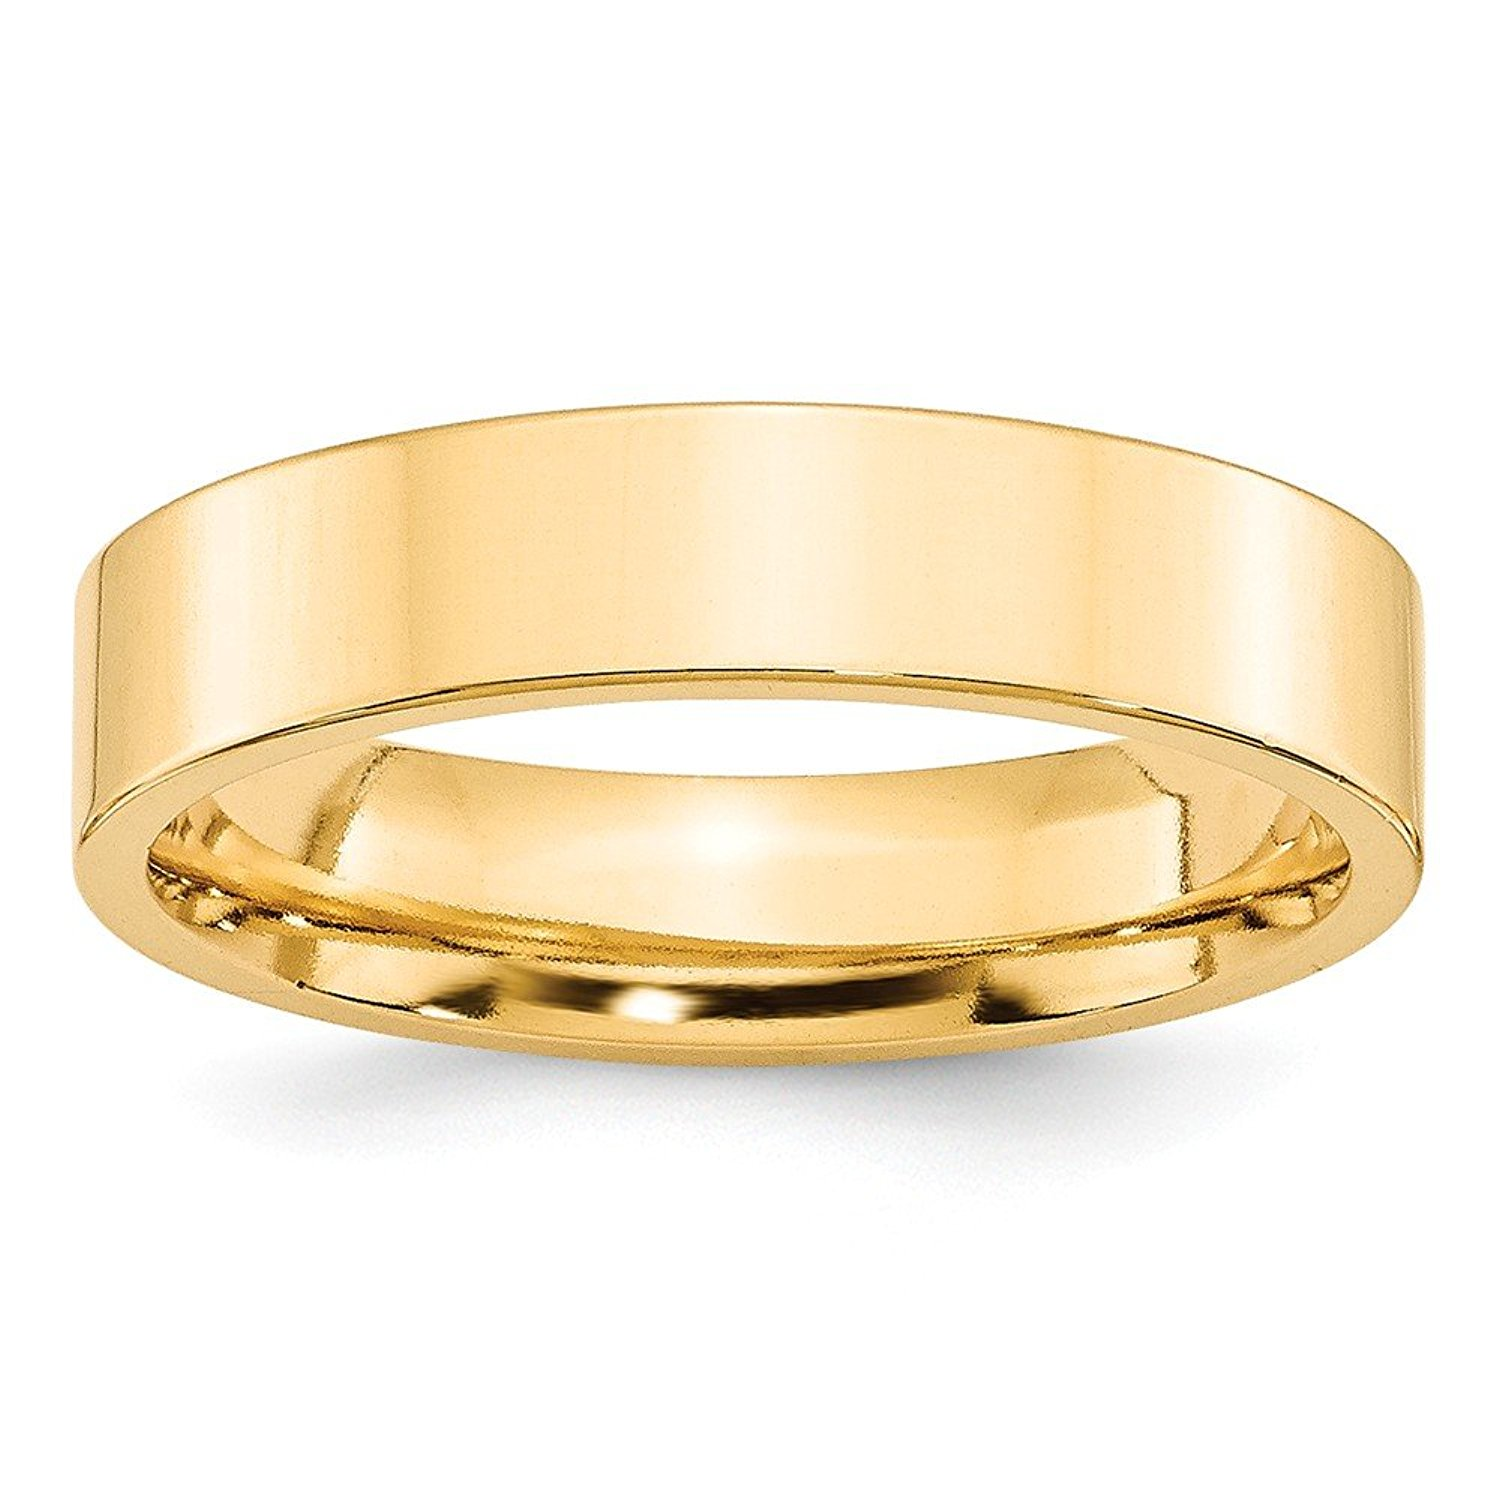 Perfect Jewelry Gift 14KY 5mm Standard Flat Comfort Fit Band Size 8